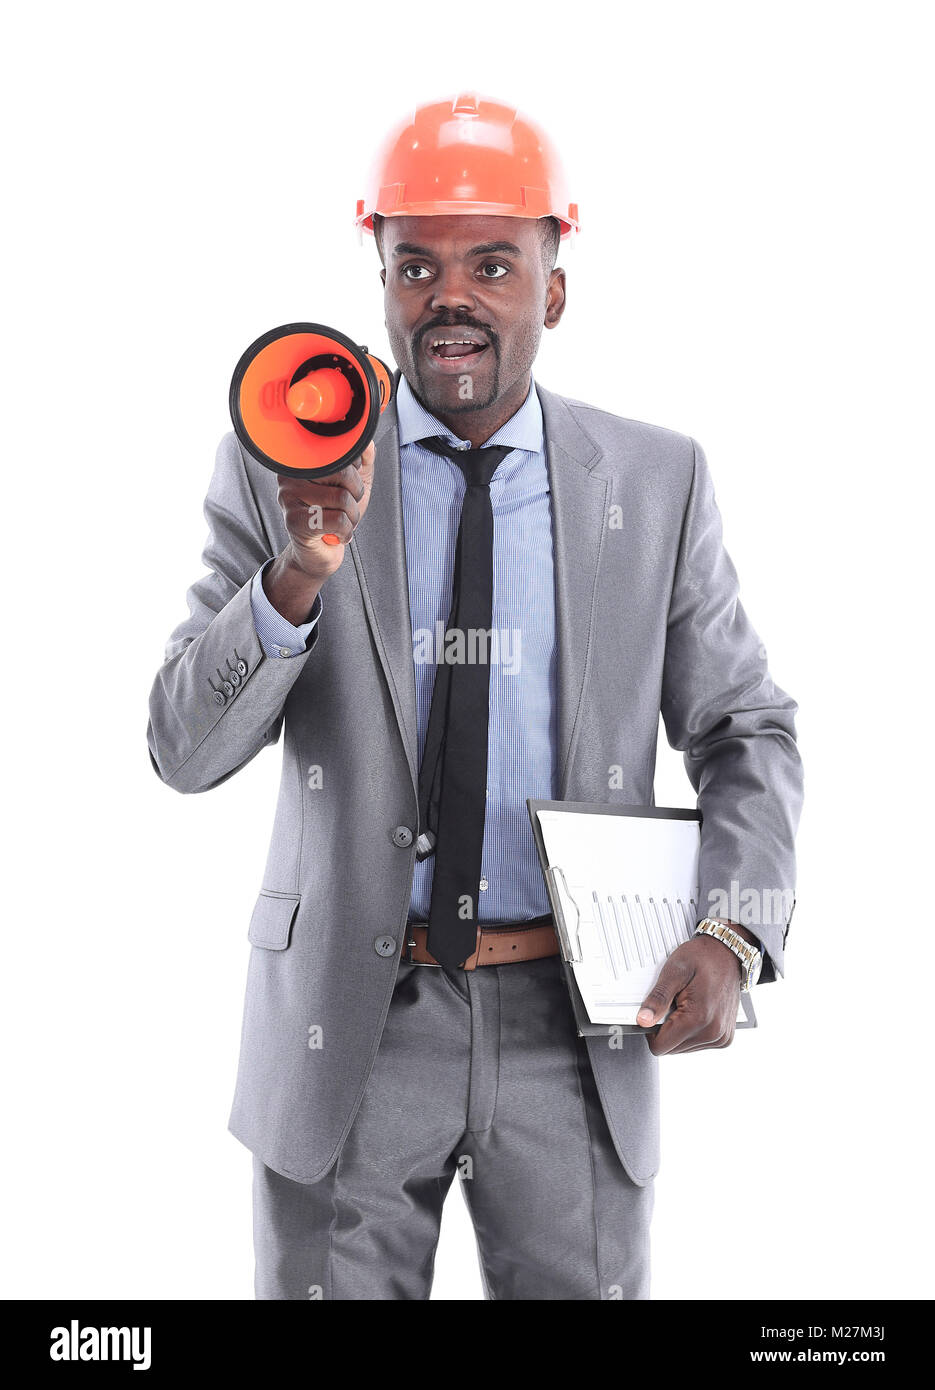 black worker giving orders with a megaphone - Stock Image